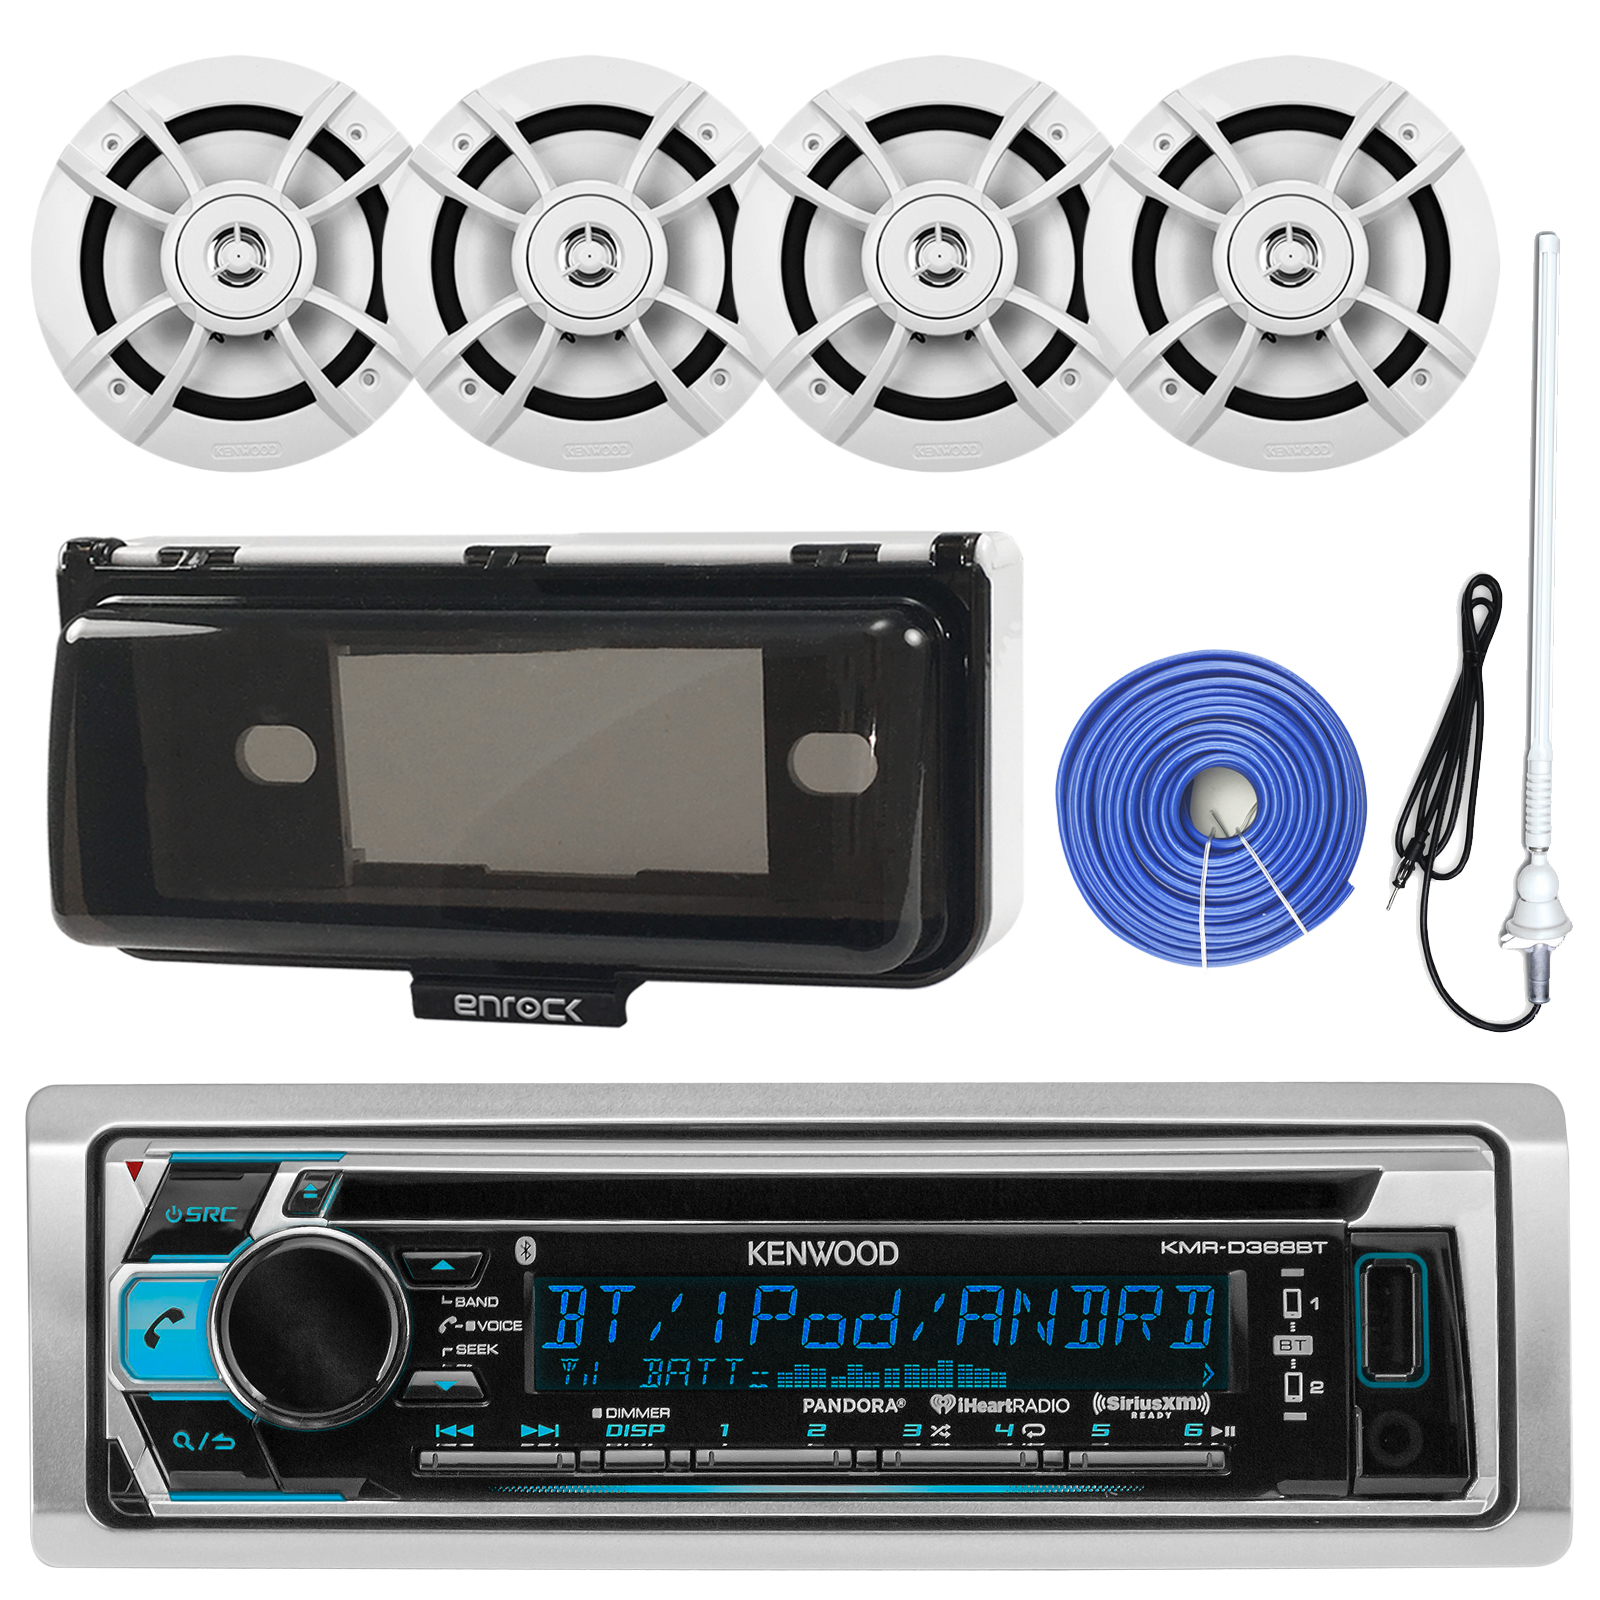 Kenwood KMRD372BT Marine Boat Audio Bluetooth CD Player Receiver W/ Protective Cover Bundle Combo With 4x 6.5-Inch 100 Watt 2-Way White Coaxial Speakers + Enrock Radio Antenna + 50Ft 14g Speaker Wire